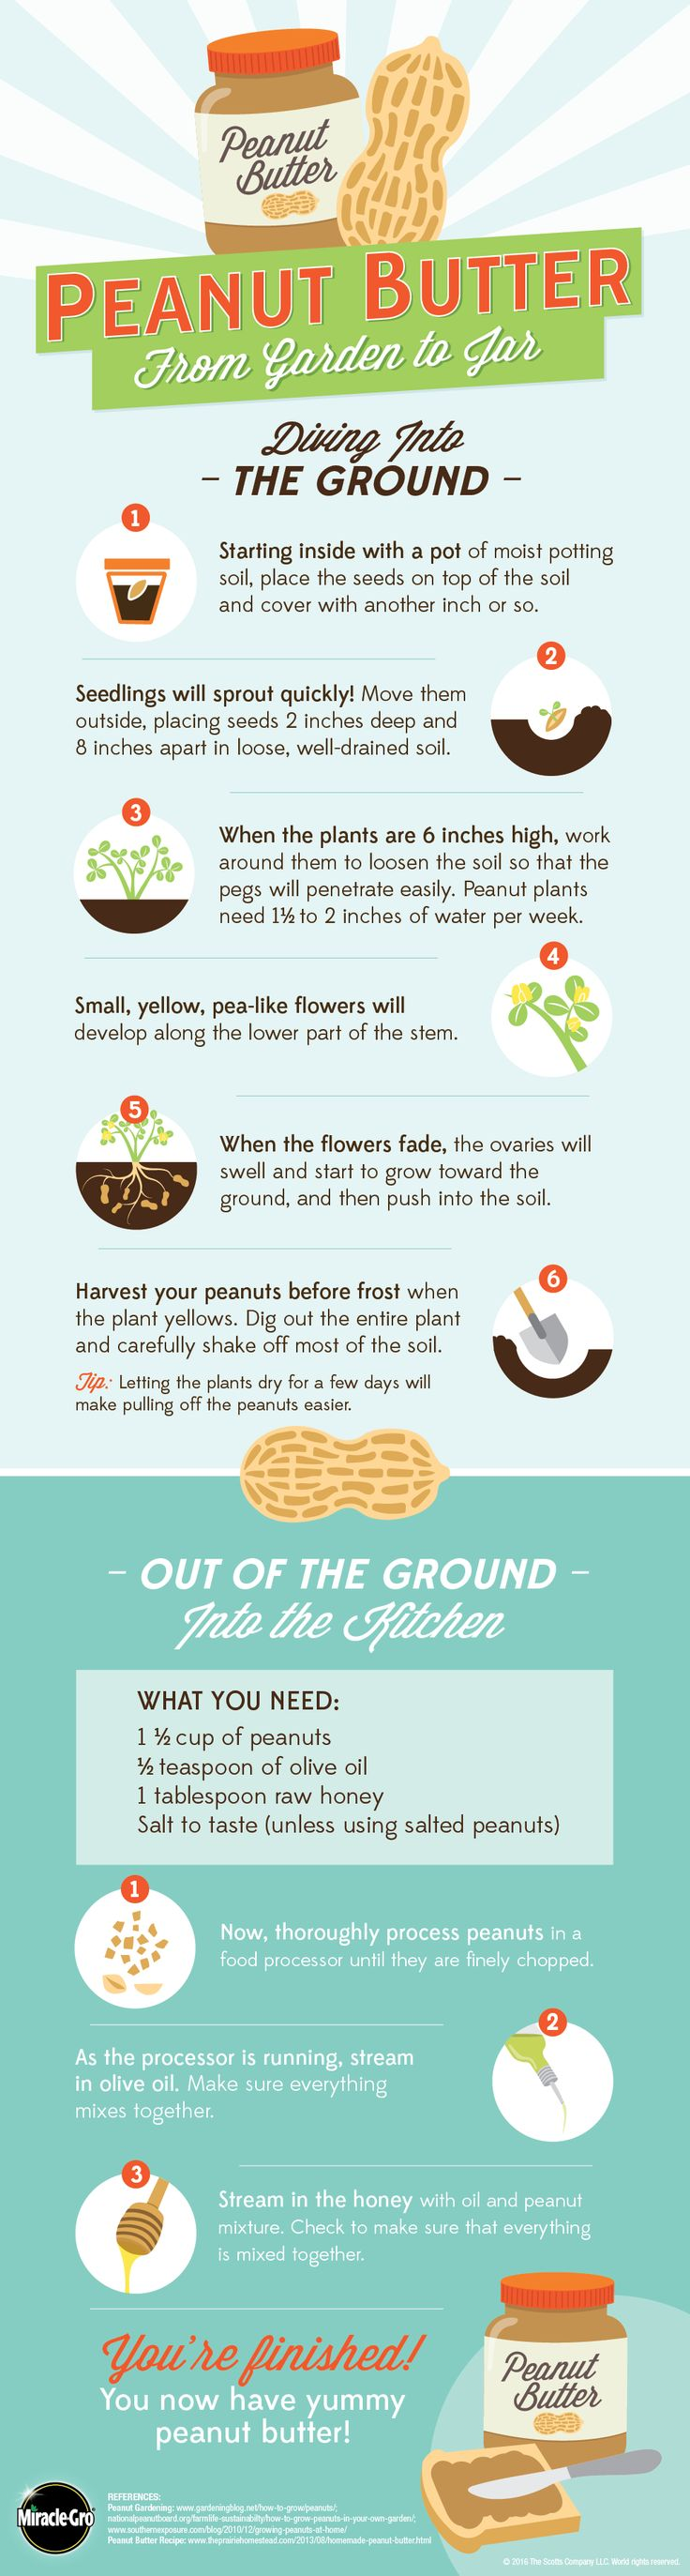 Learn how to grow peanuts to make your own yummy peanut butter.